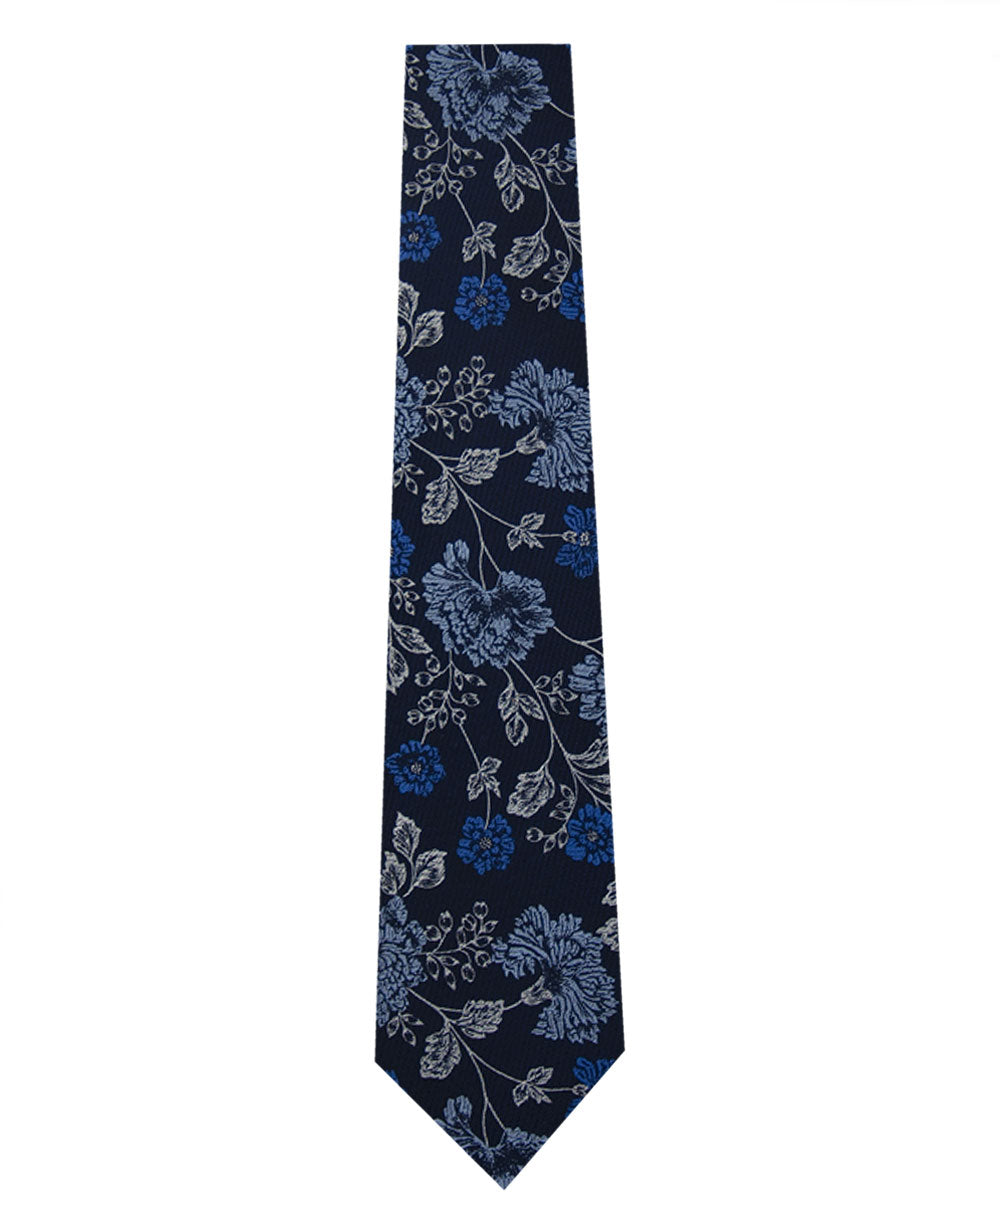 Navy and Floral Design Silk Tie Long